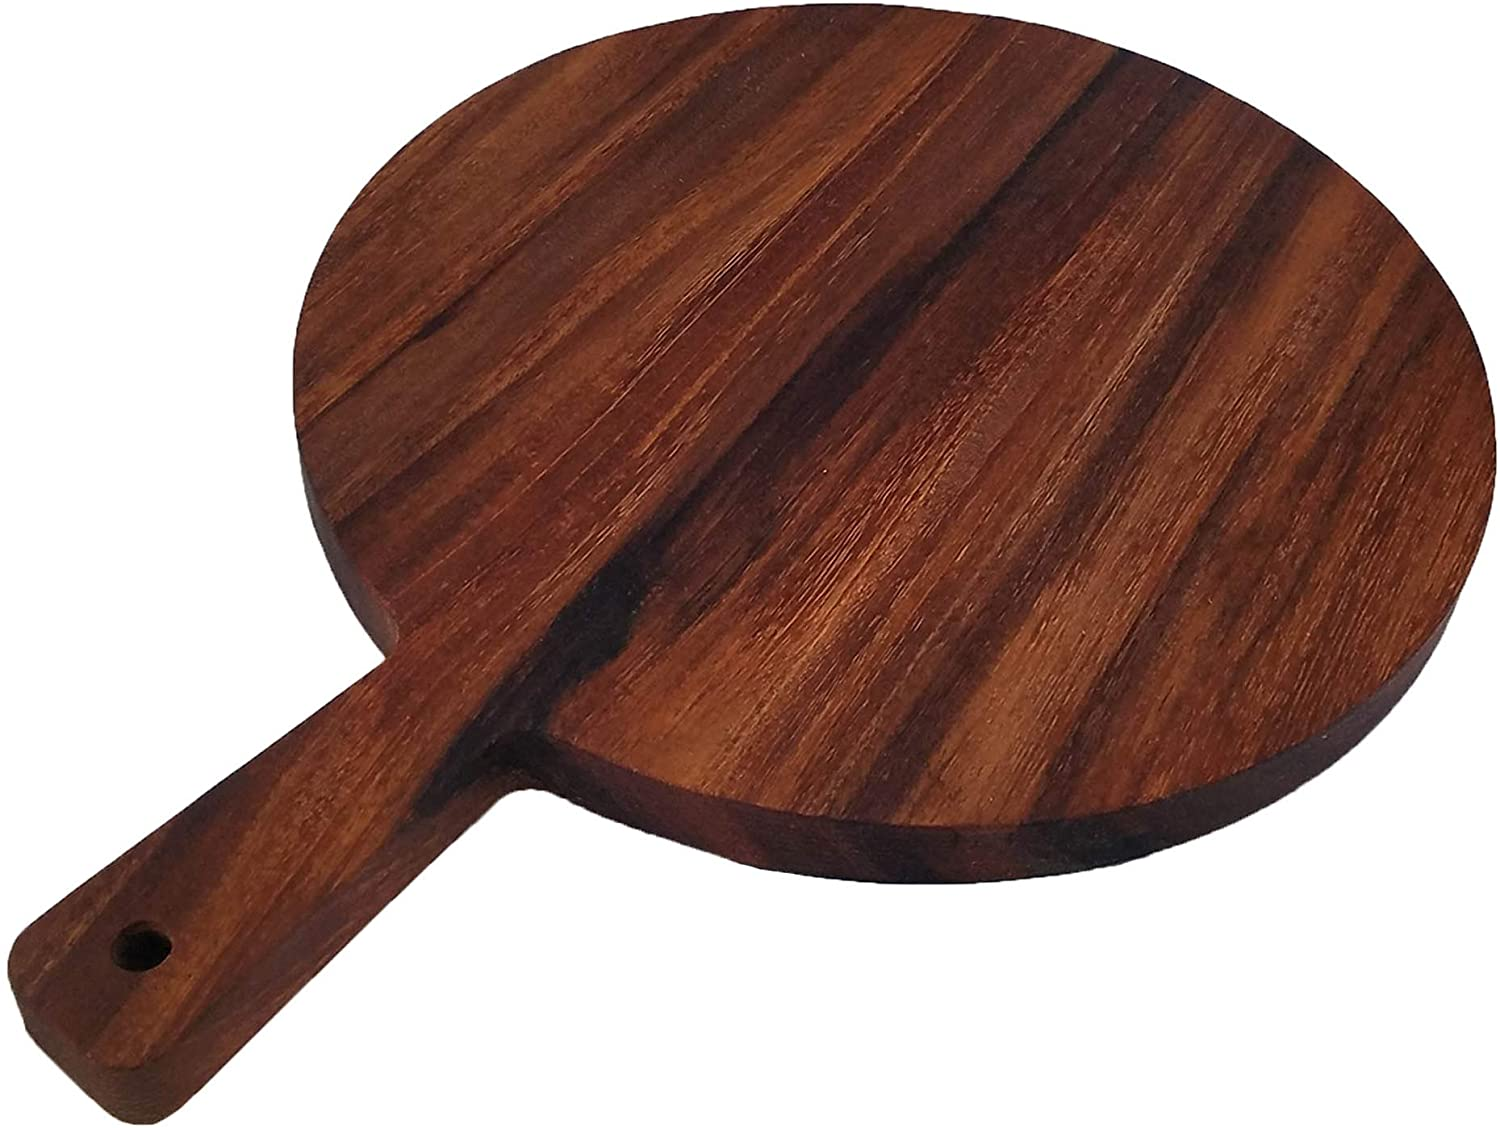 PAROTA WOOD PRODUCTS / Round Parota Wood Serving/Cutting Board with Handle